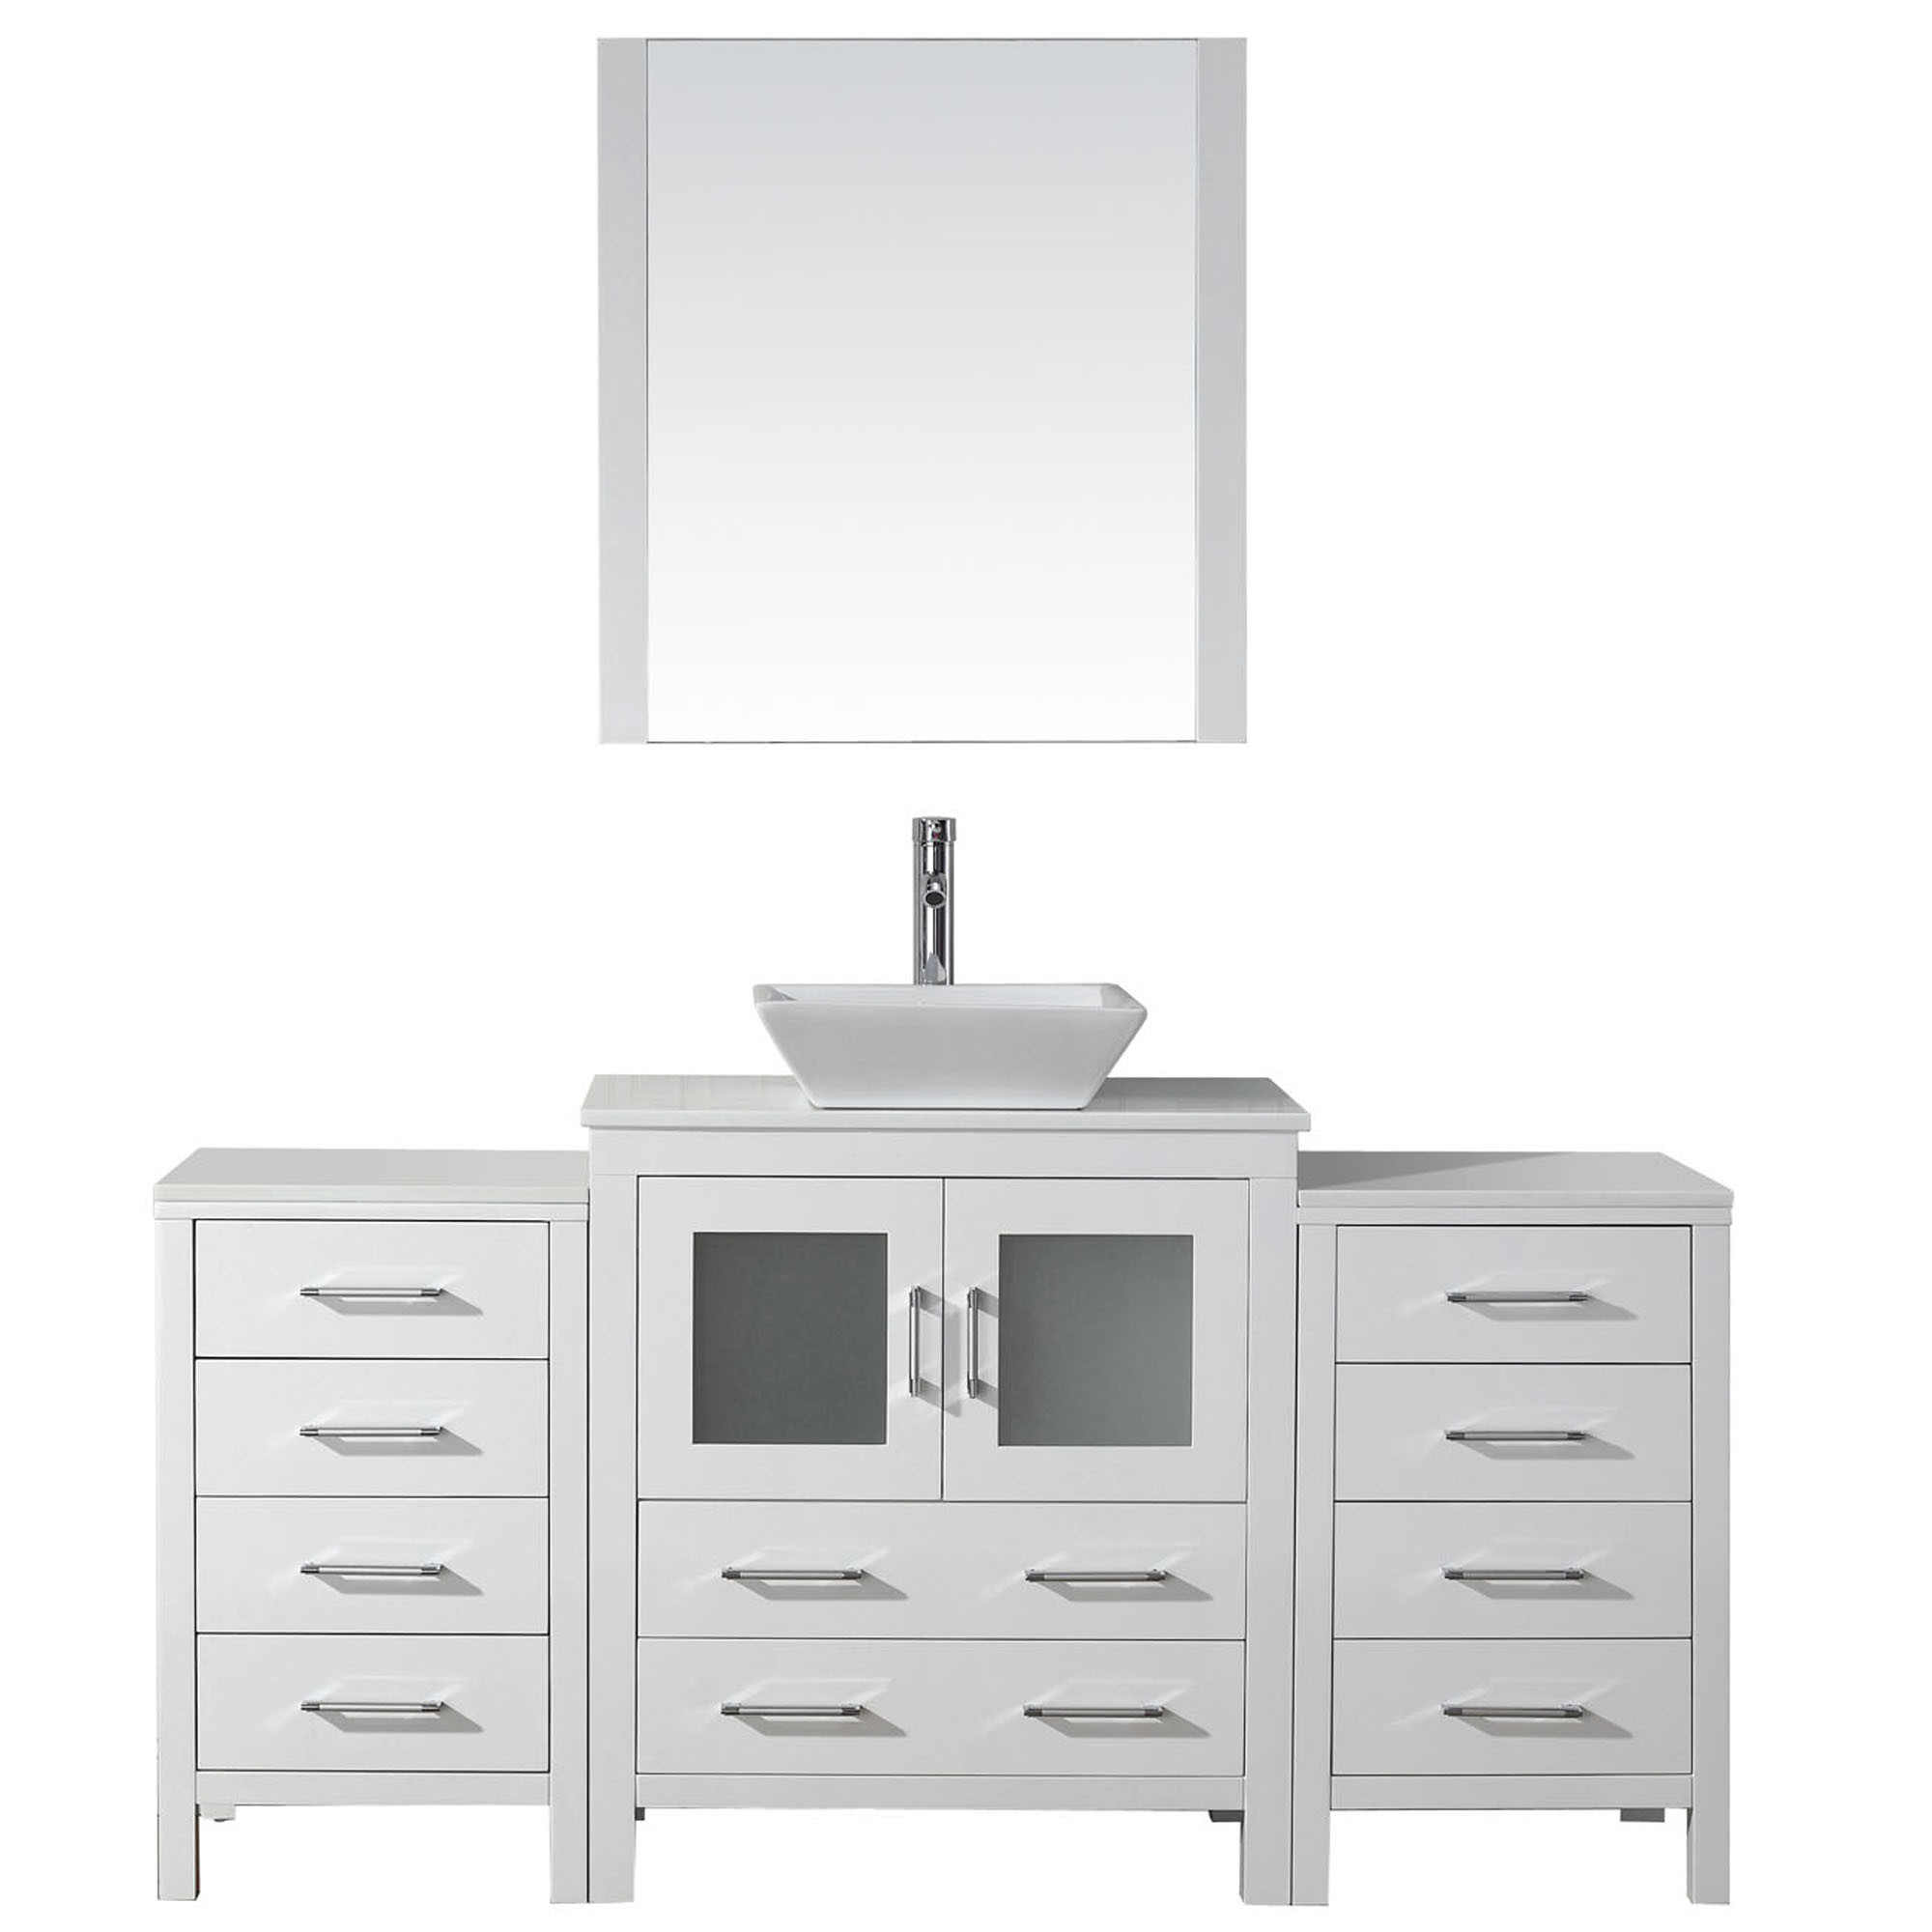 Virtu KS-70066-WM-WH-001 Dior 66 Inch Single Bathroom Vanity Set In White